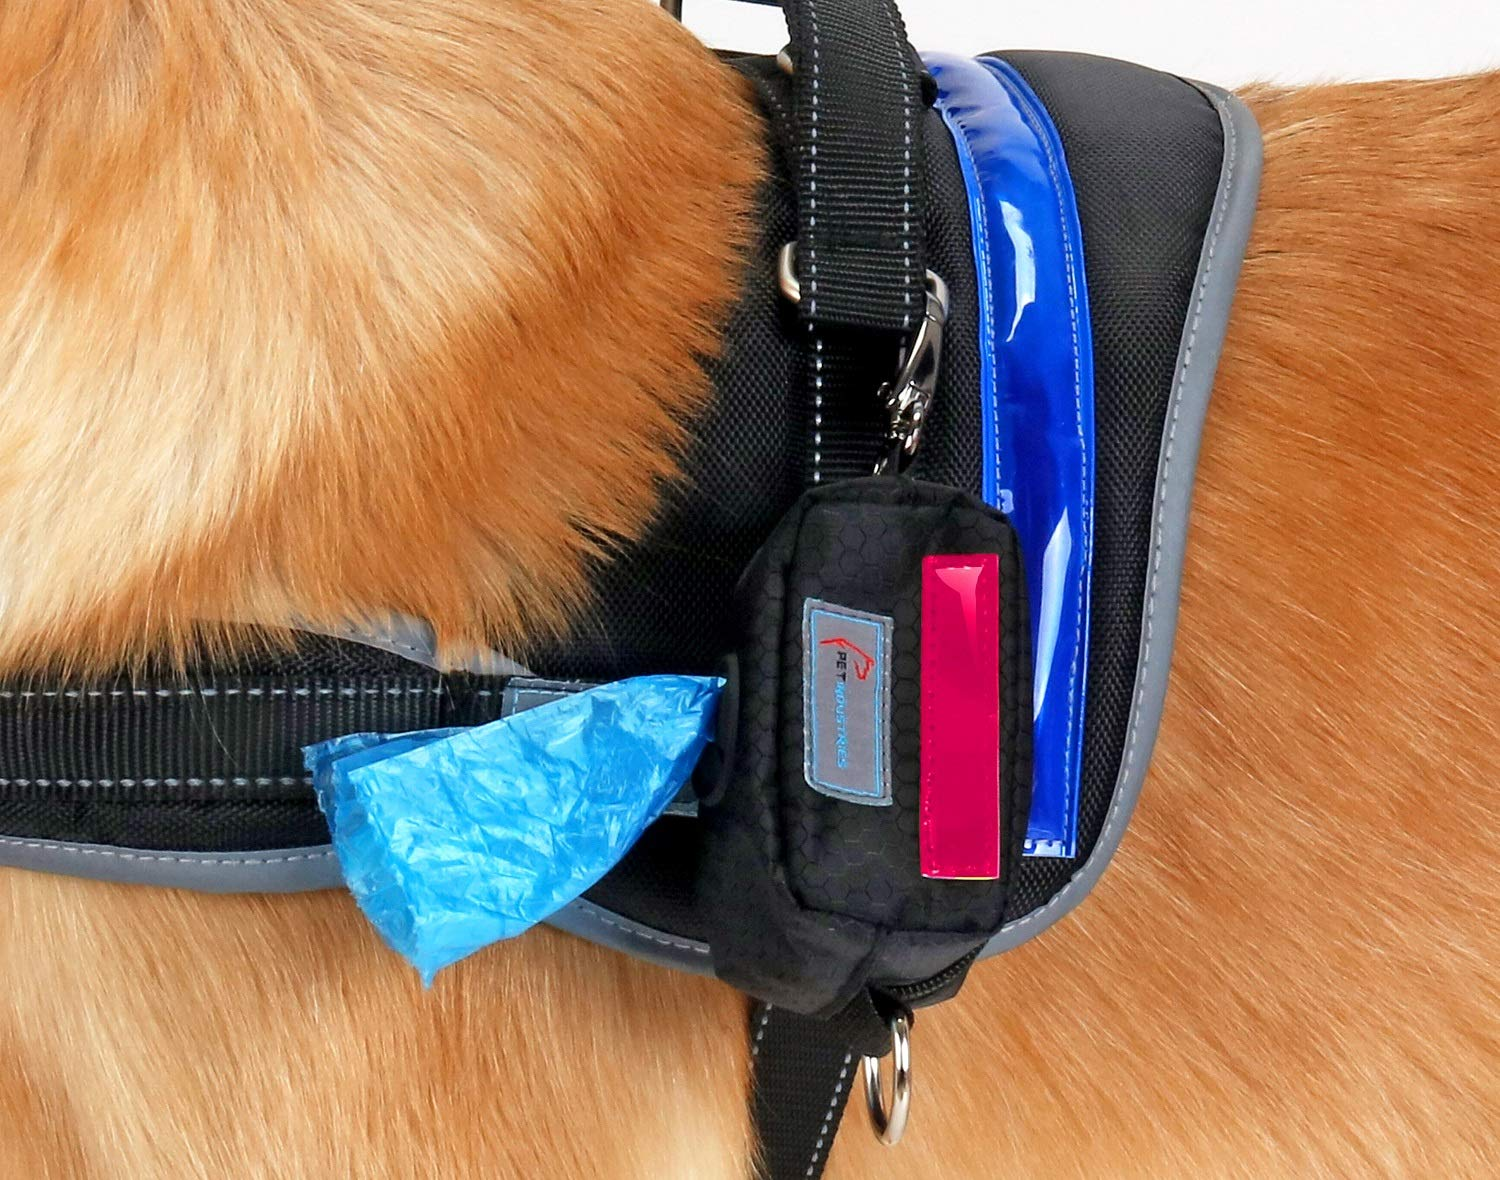 Pet Indutries Dog Poop Bag Holder Dispenser Zippered Pouch /& Carabiner Clip for Easy Carry and Velcro Leash Attachment Strap Pet Industries Reflective Strip Heavy-Duty Waterproof Material